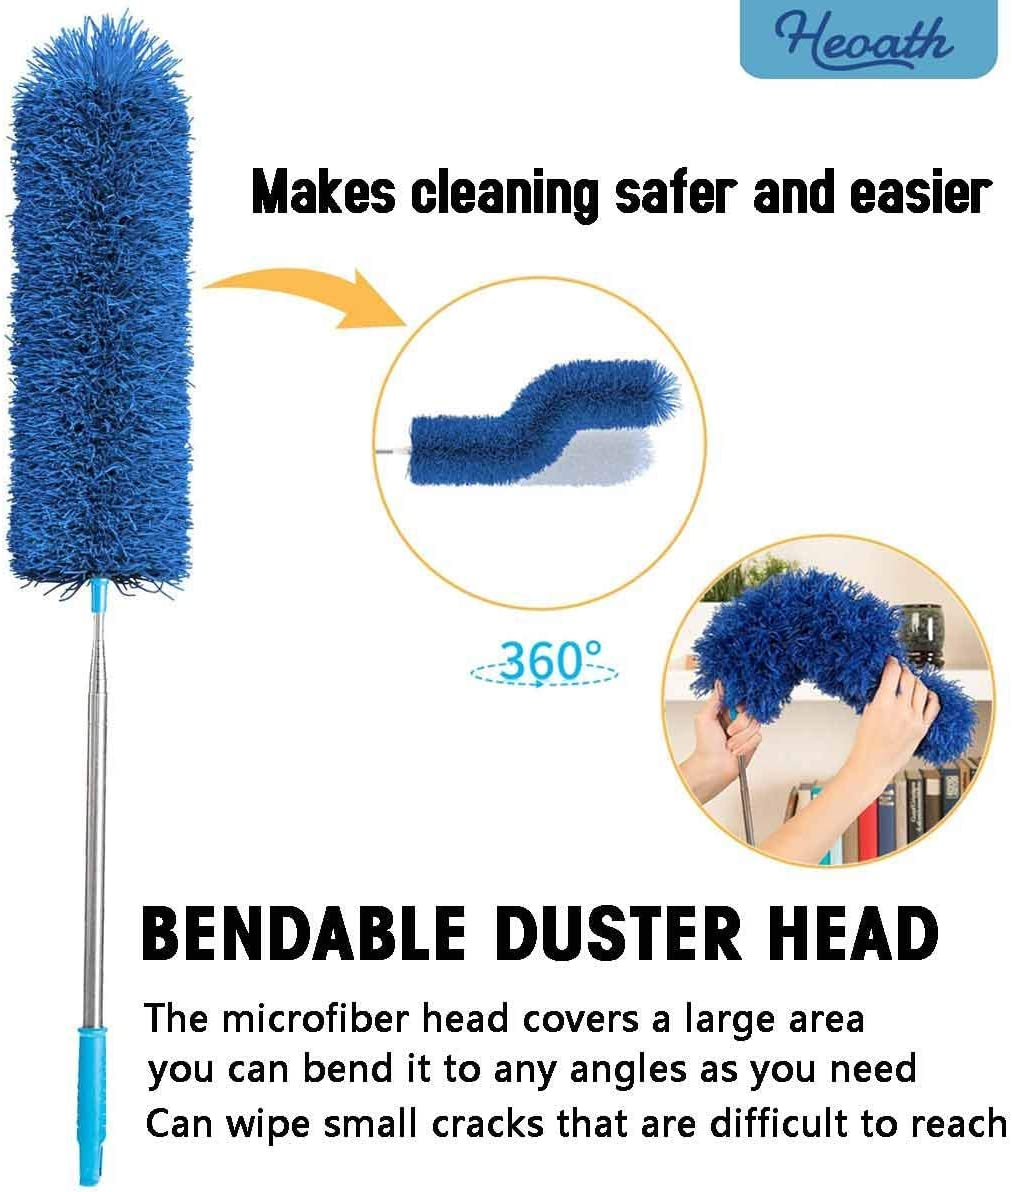 Non-Scratch Blue Extra Long 100 inches Cobwebs Washable Baseboards Ceiling Fan Blinds Bendable HEOATH Microfiber Extendable Duster Hypoallergenic Feather Dusters for Cleaning Roof